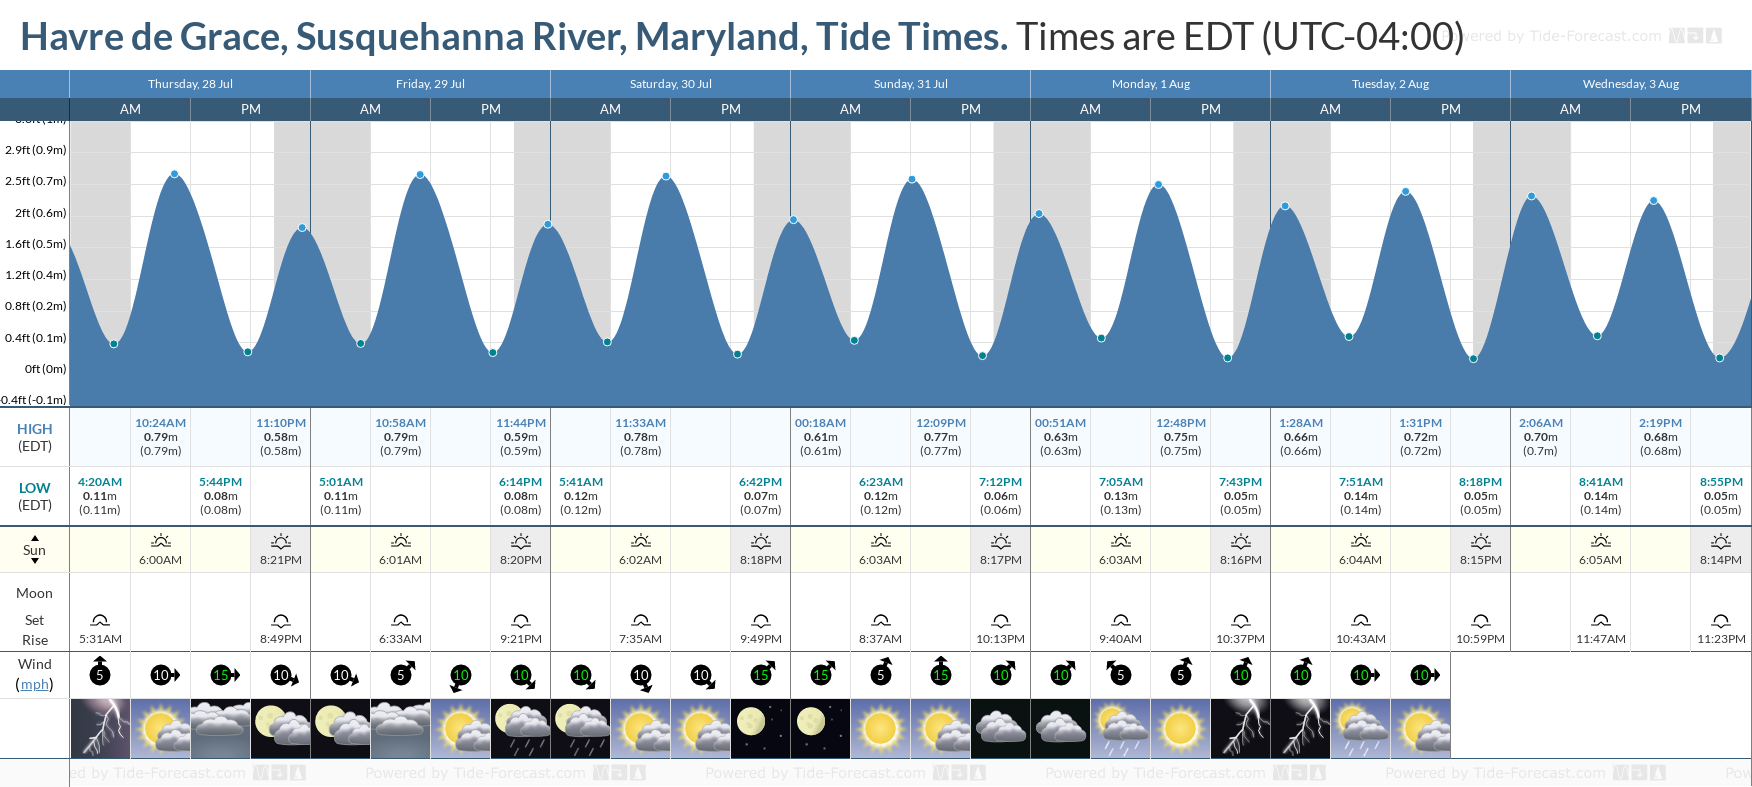 Havre de Grace, Susquehanna River, Maryland Tide Chart including high and low tide tide times for the next 7 days